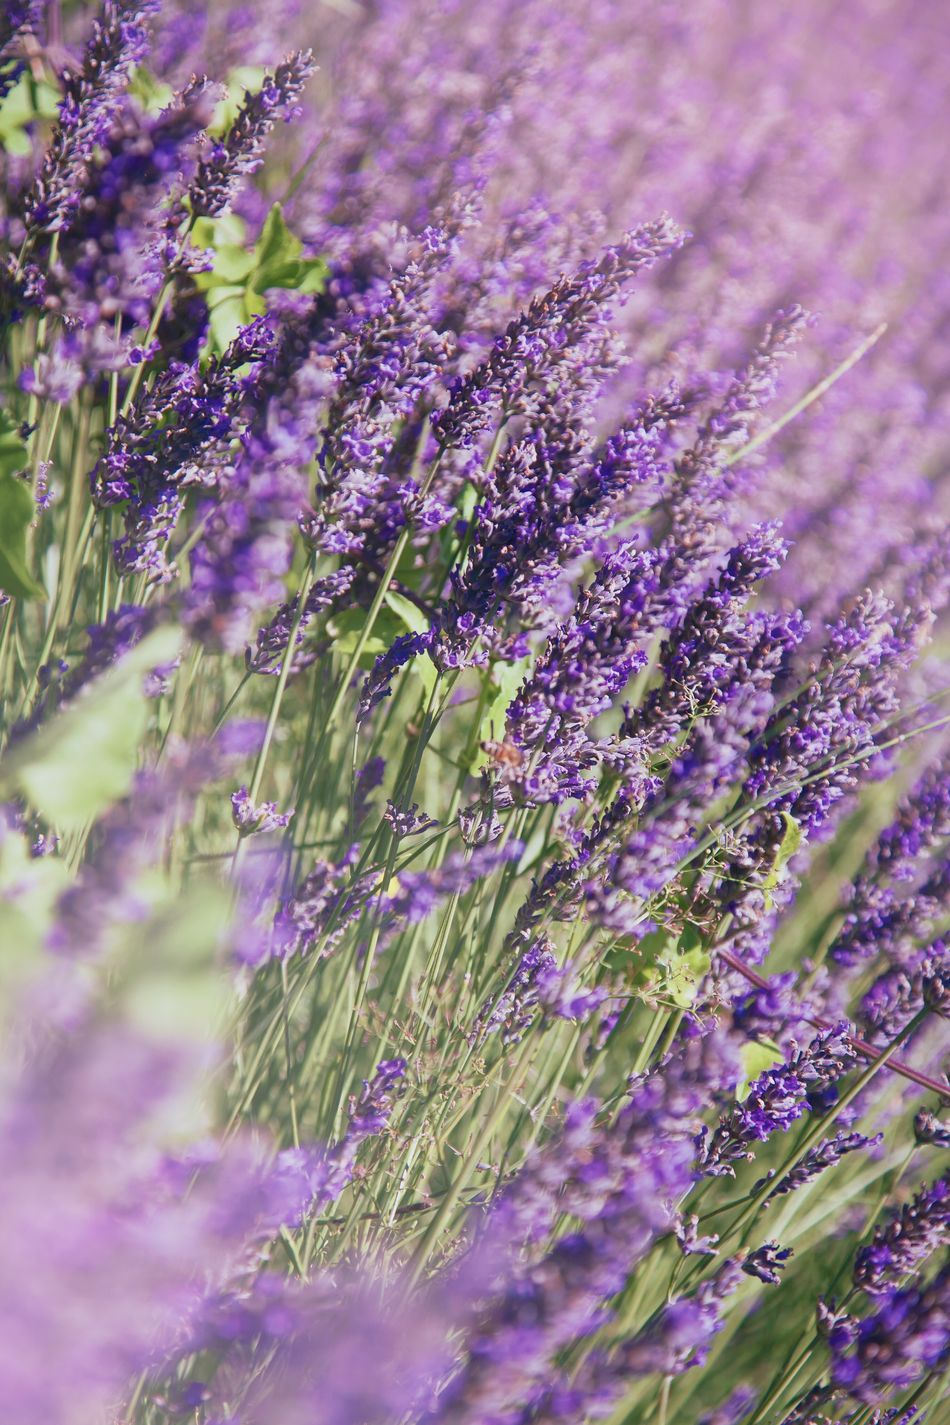 Lavender Flower Growth Nature Beauty In Nature Full Frame Purple Field Plant No People Fragility Freshness Close-up Outdoors Backgrounds Day Flower Head Flowers France Drôme Provence Summer Summertime Perfume Scenics